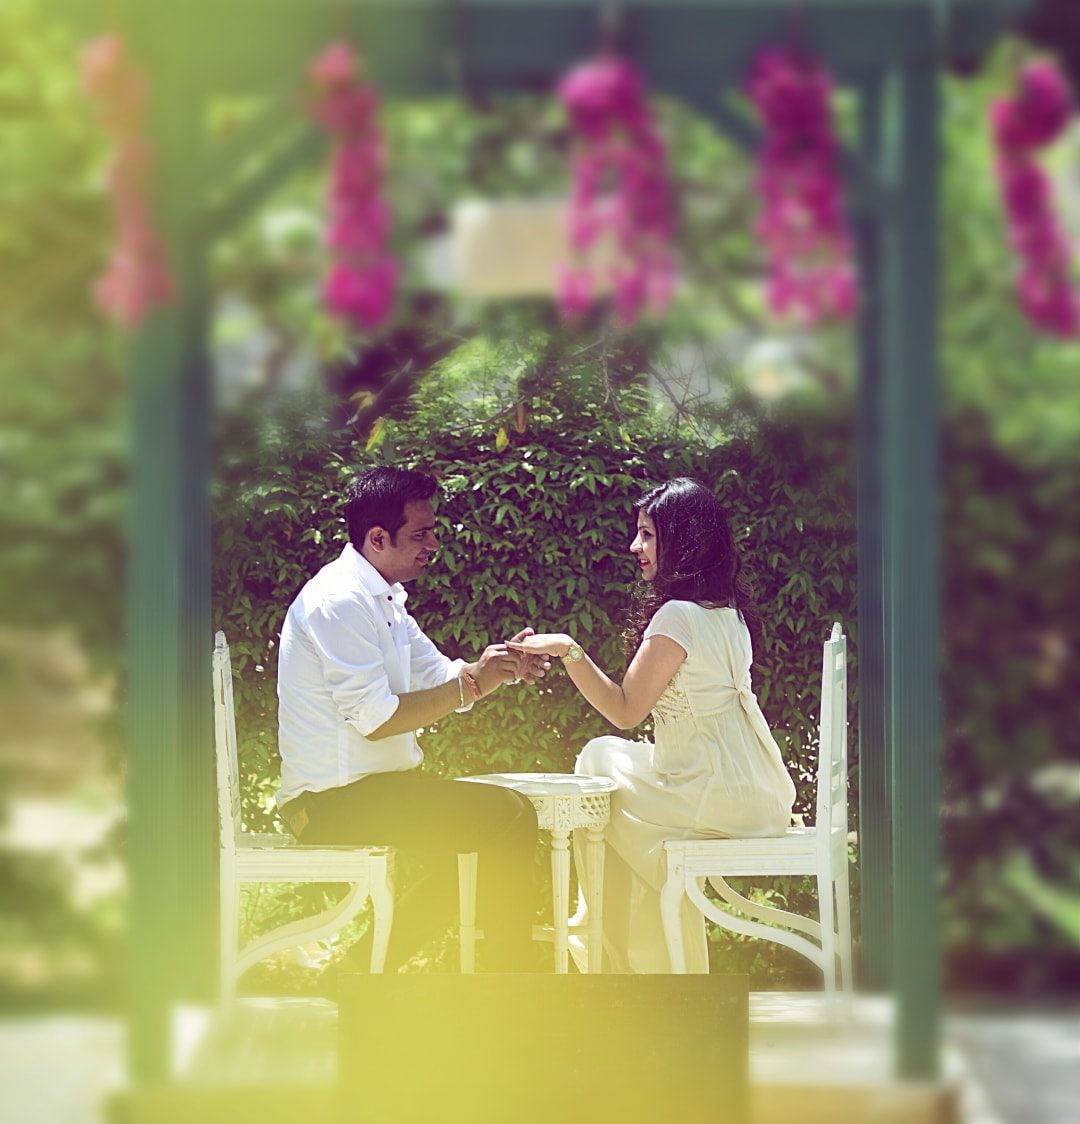 Bride and Groom To-Be on a Date by Himanshu Chauhan Wedding-photography | Weddings Photos & Ideas